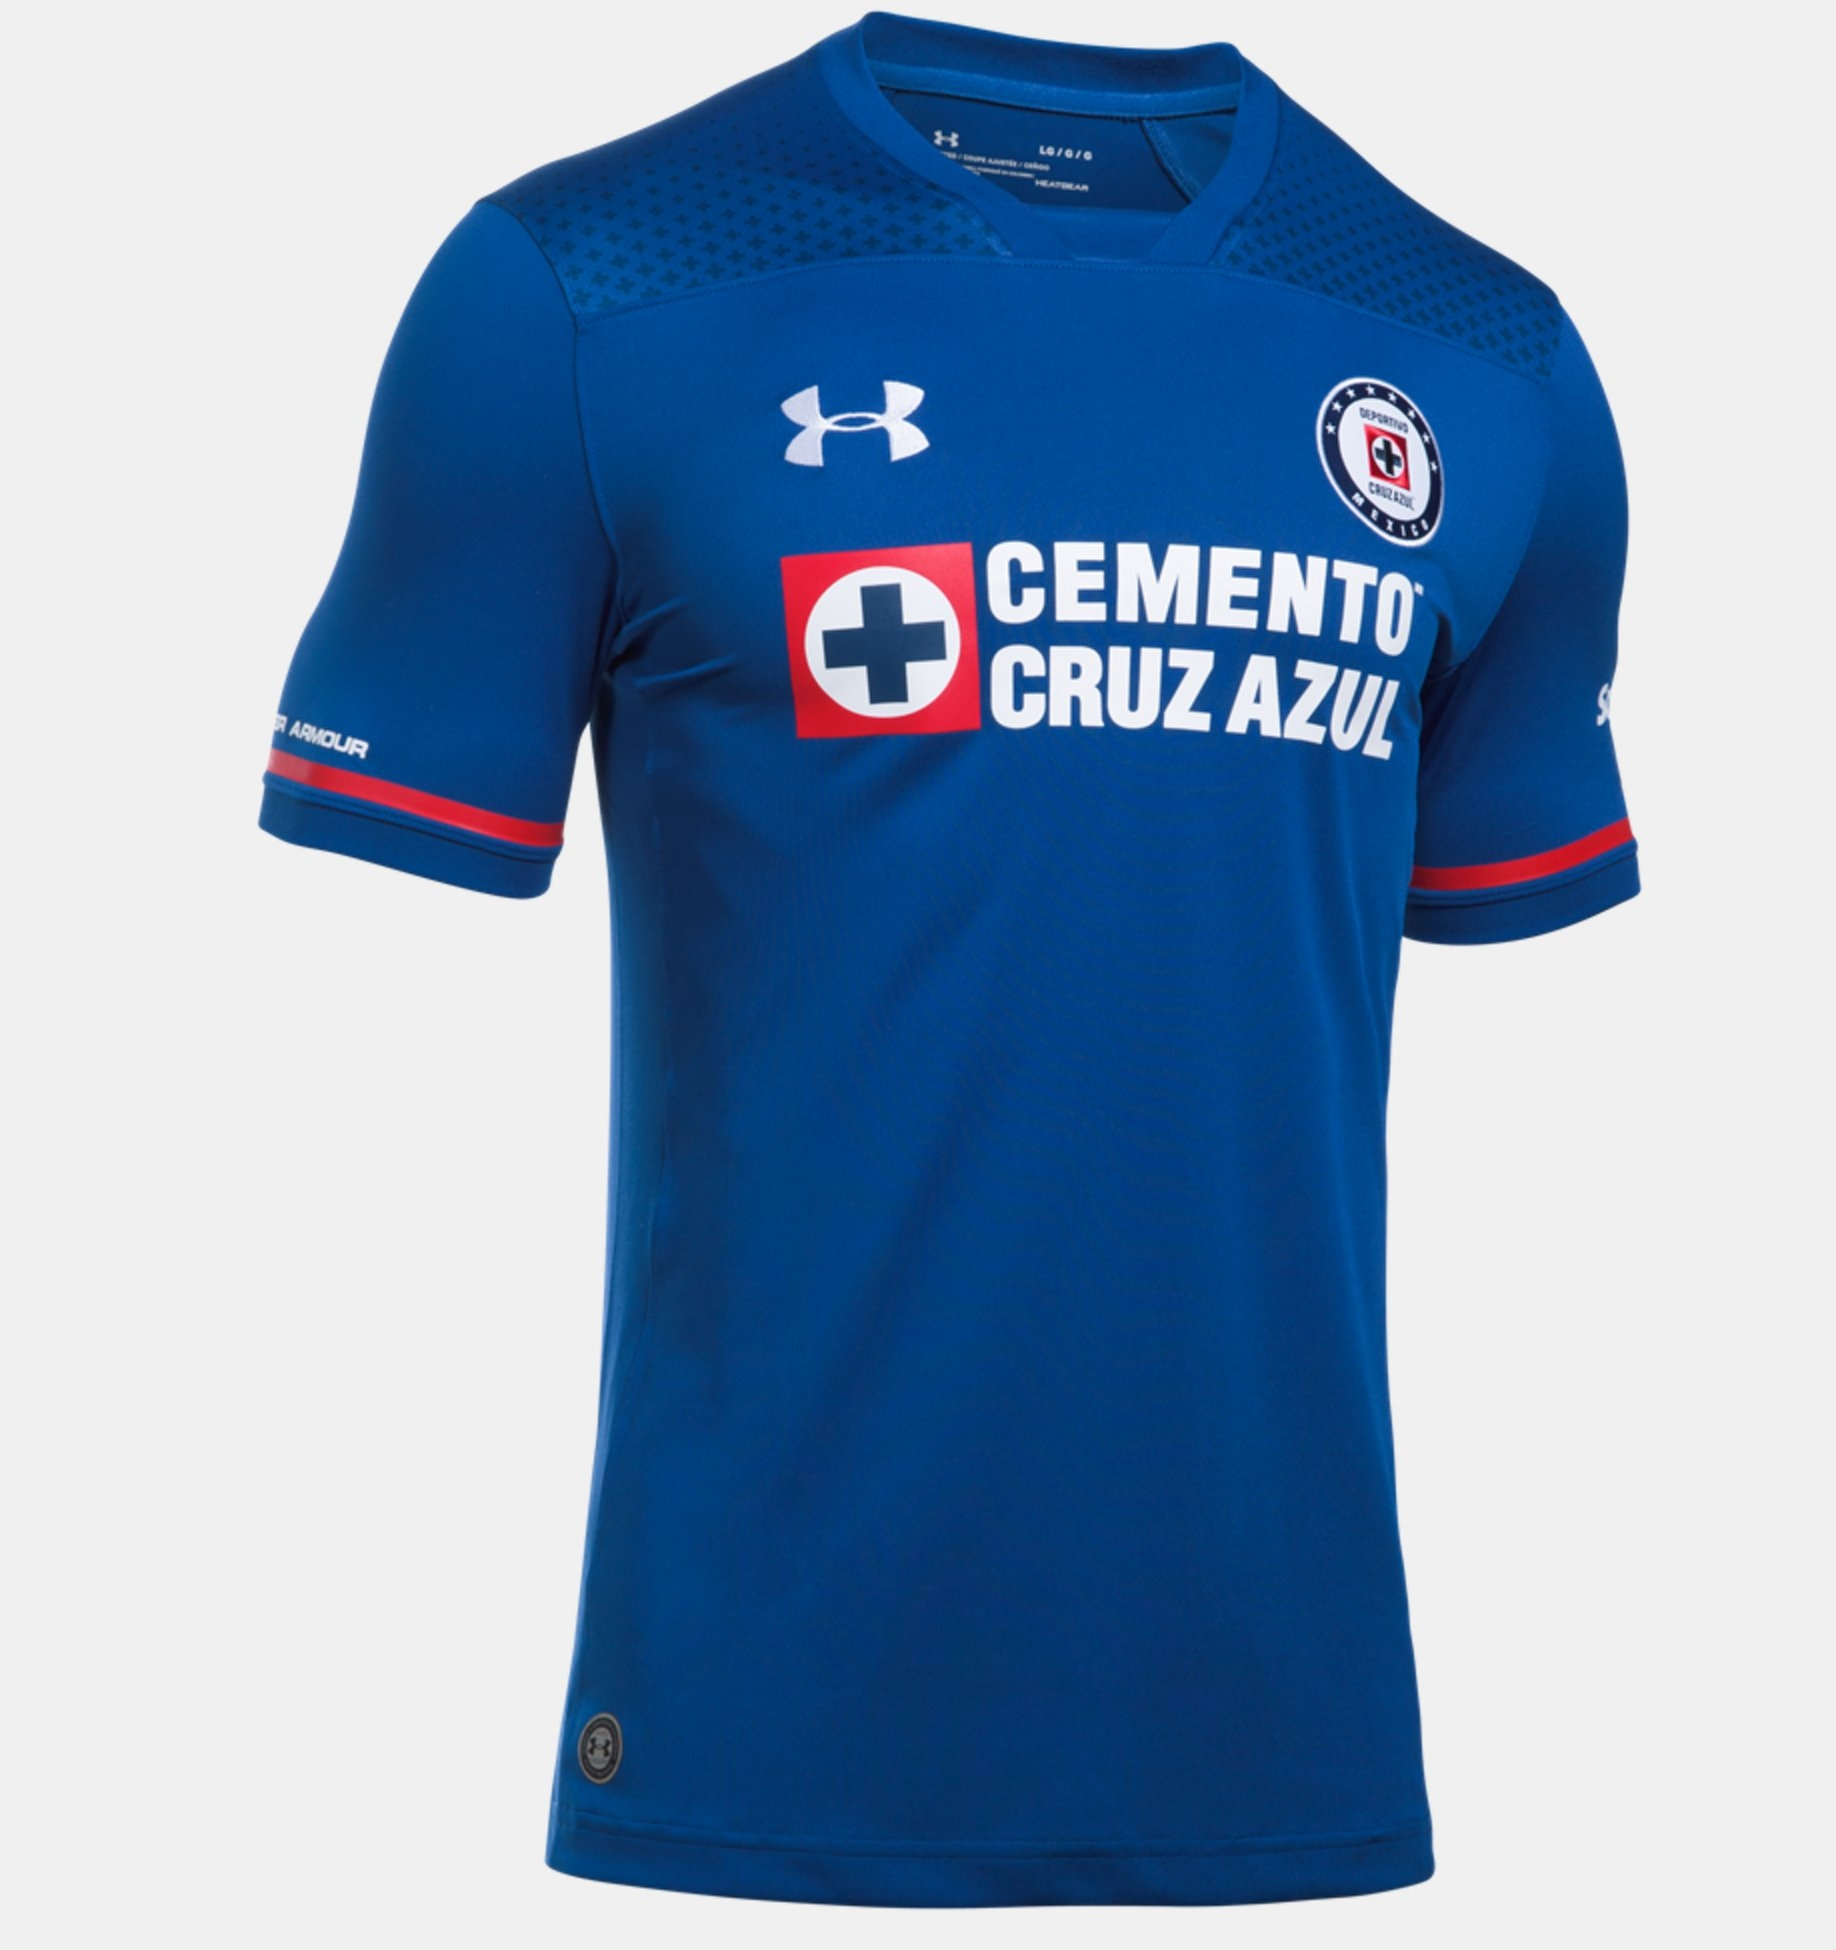 52d8e143a59 Under Armour Men s Cruz Azul Home Jersey 2017 18 - Soccer Premier